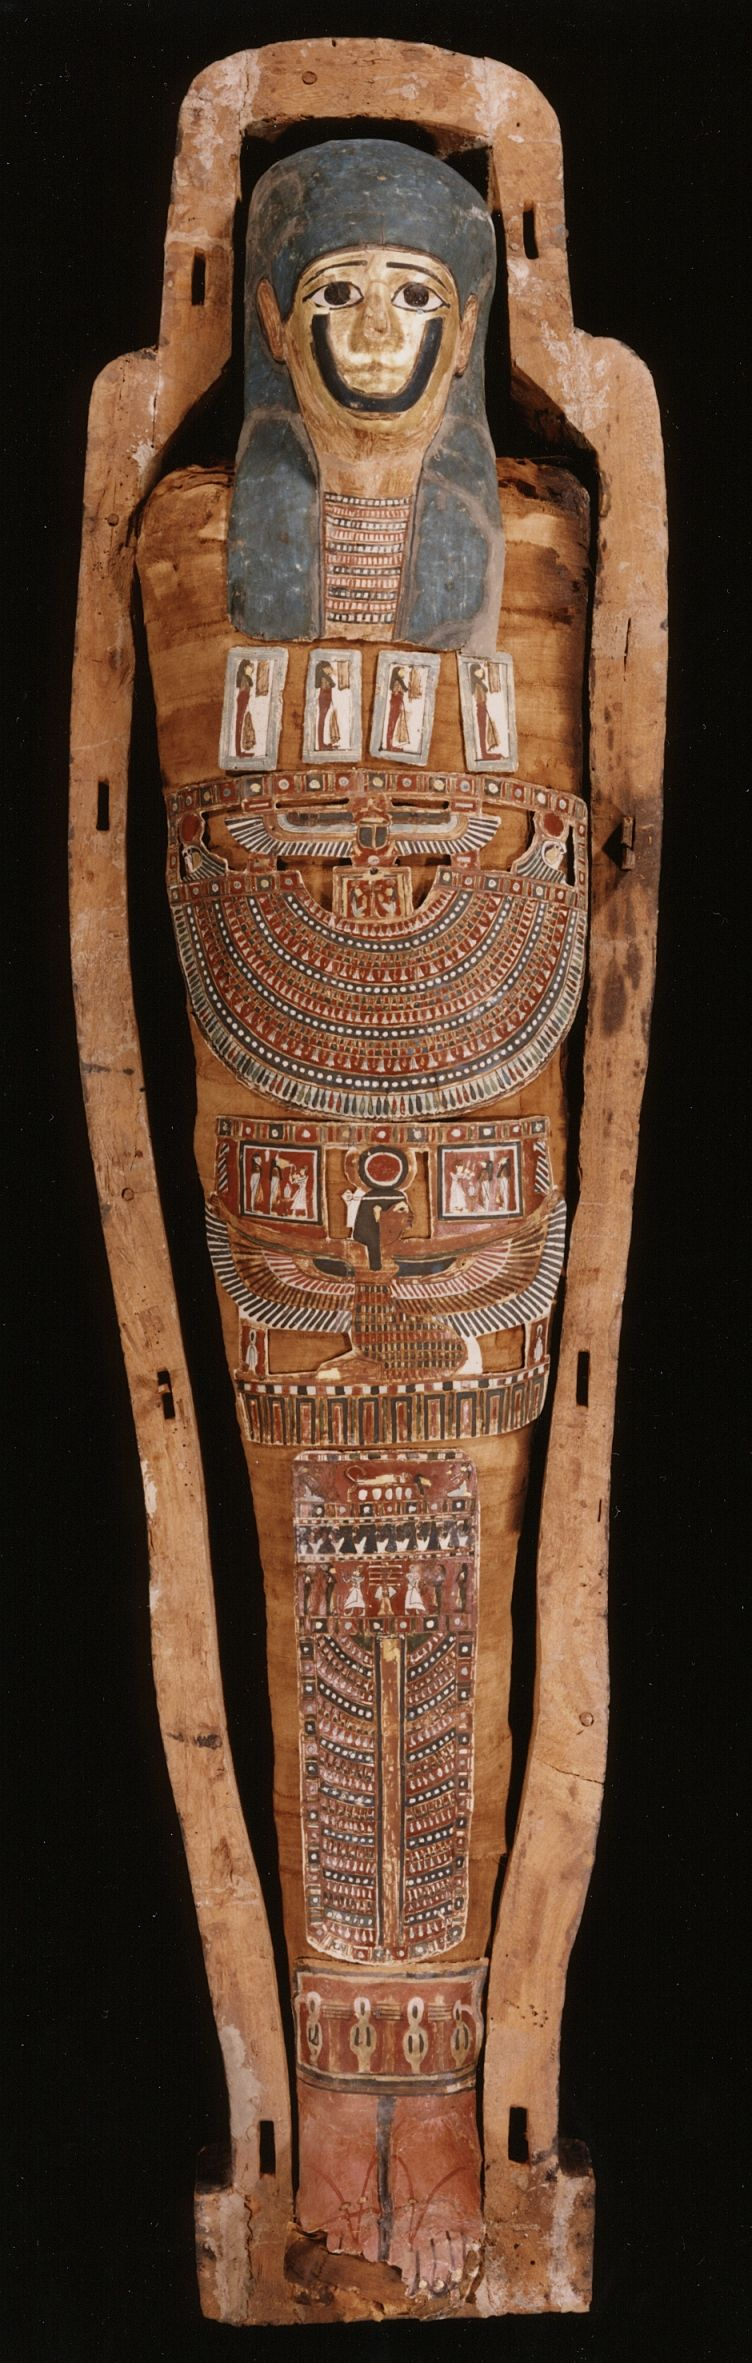 Egyptian mummy and coffin, 150 BC-50 A.D. Within these wrappings is the mummified body of a man who died 2,000 years ago.